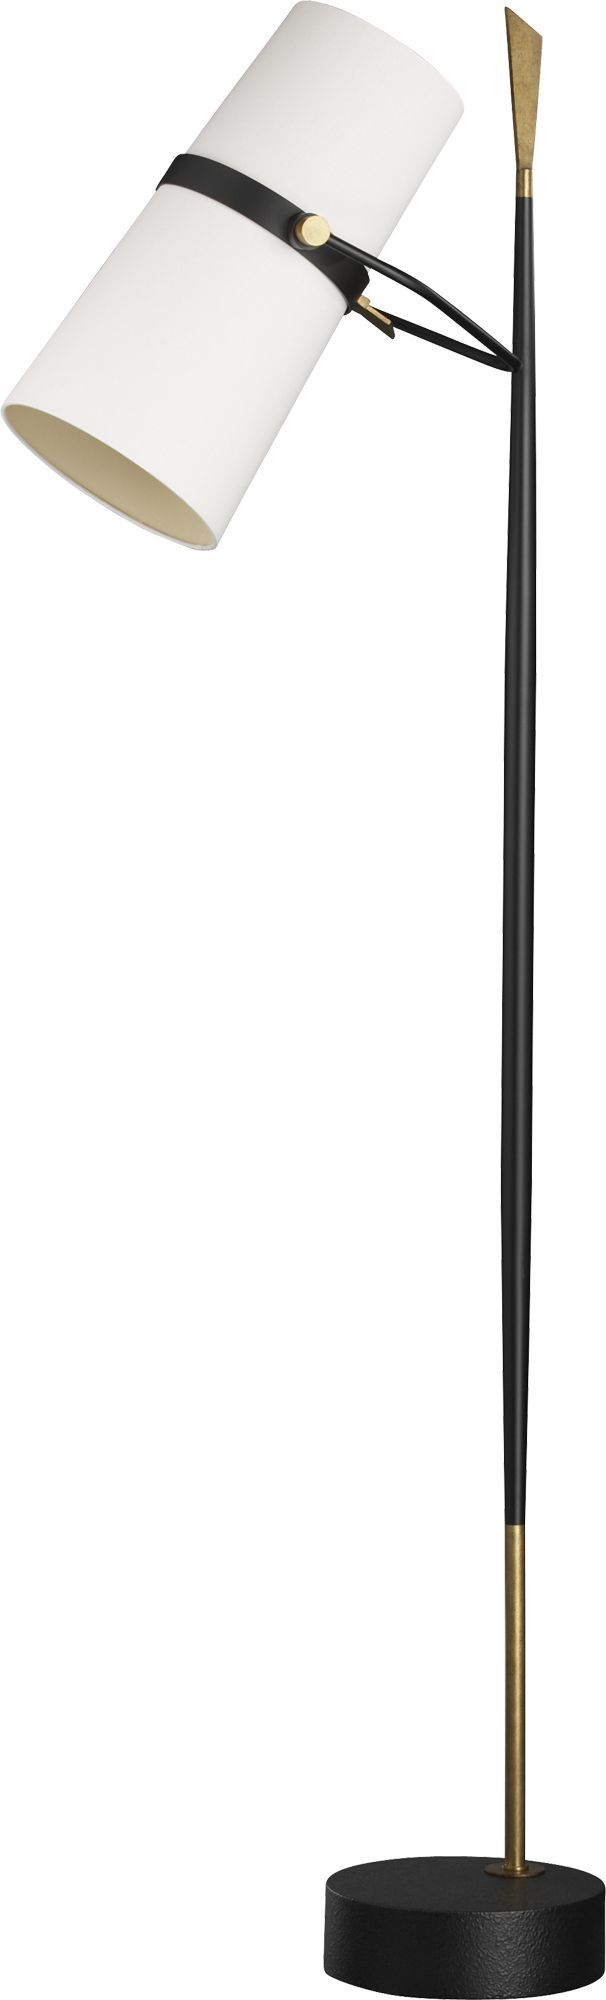 A lot of personality lights up the room with this medieval-modern floor lamp crafted in antiqued brass and black iron.  Slender mixed metal base rises spear-like from its offset pedestal, ending in a distinctive geometric finial.  Contemporary megaphone white shade covers two sockets for optimal lighting.